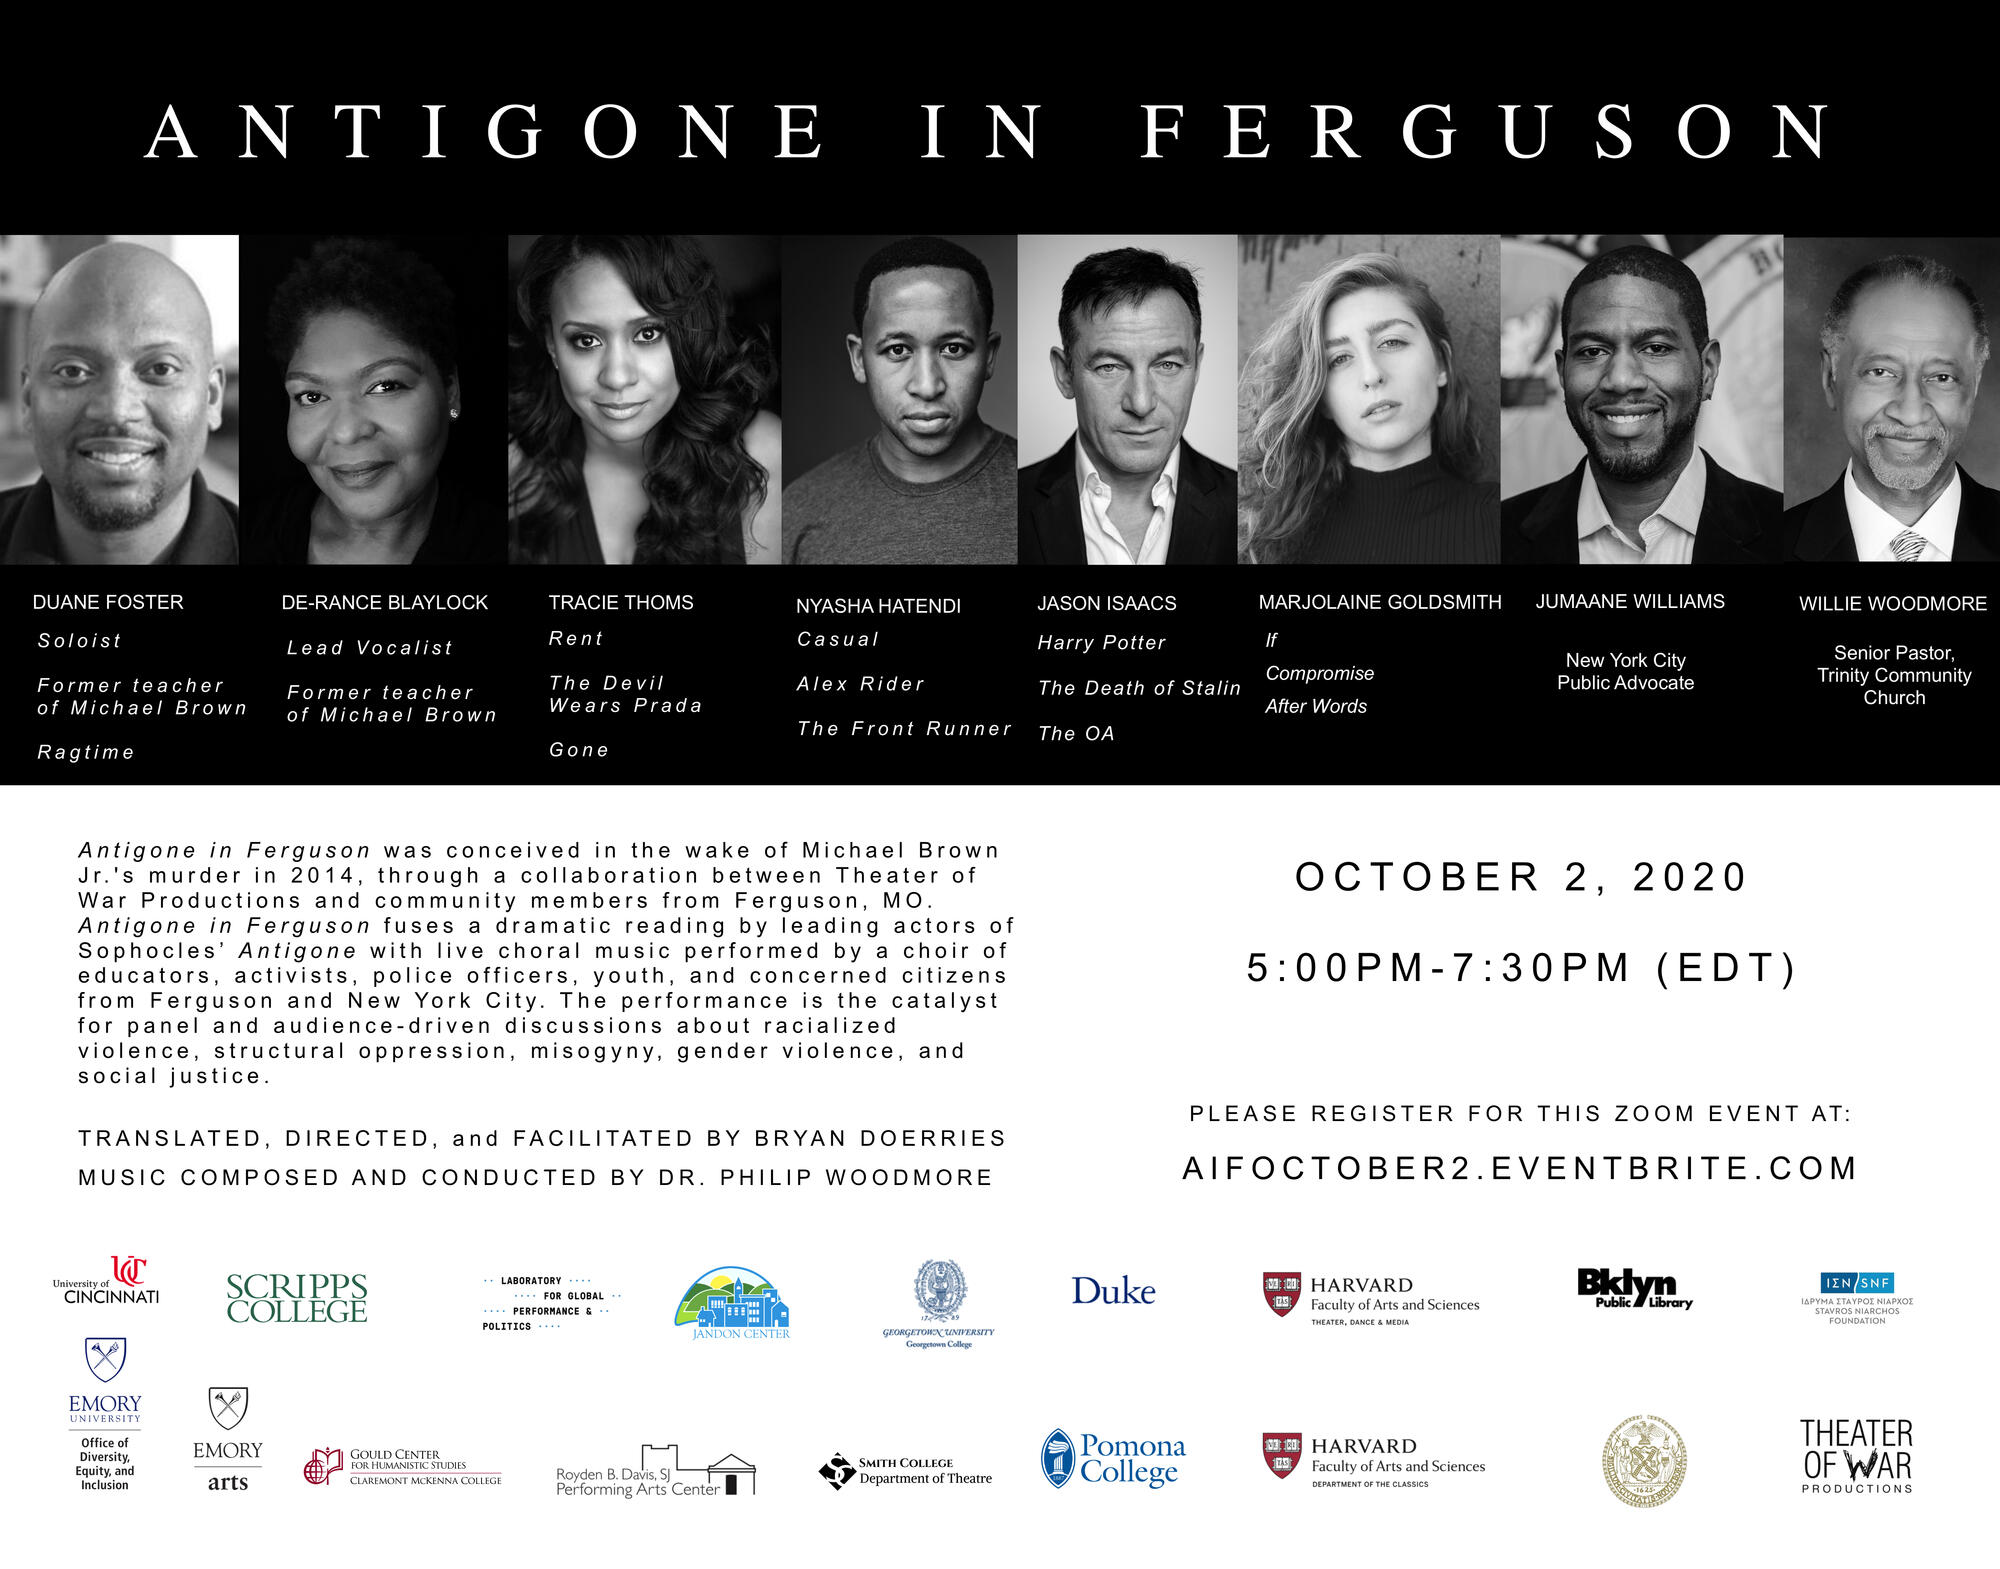 Cast members of Antigone in Ferguson are displayed at top with event info below